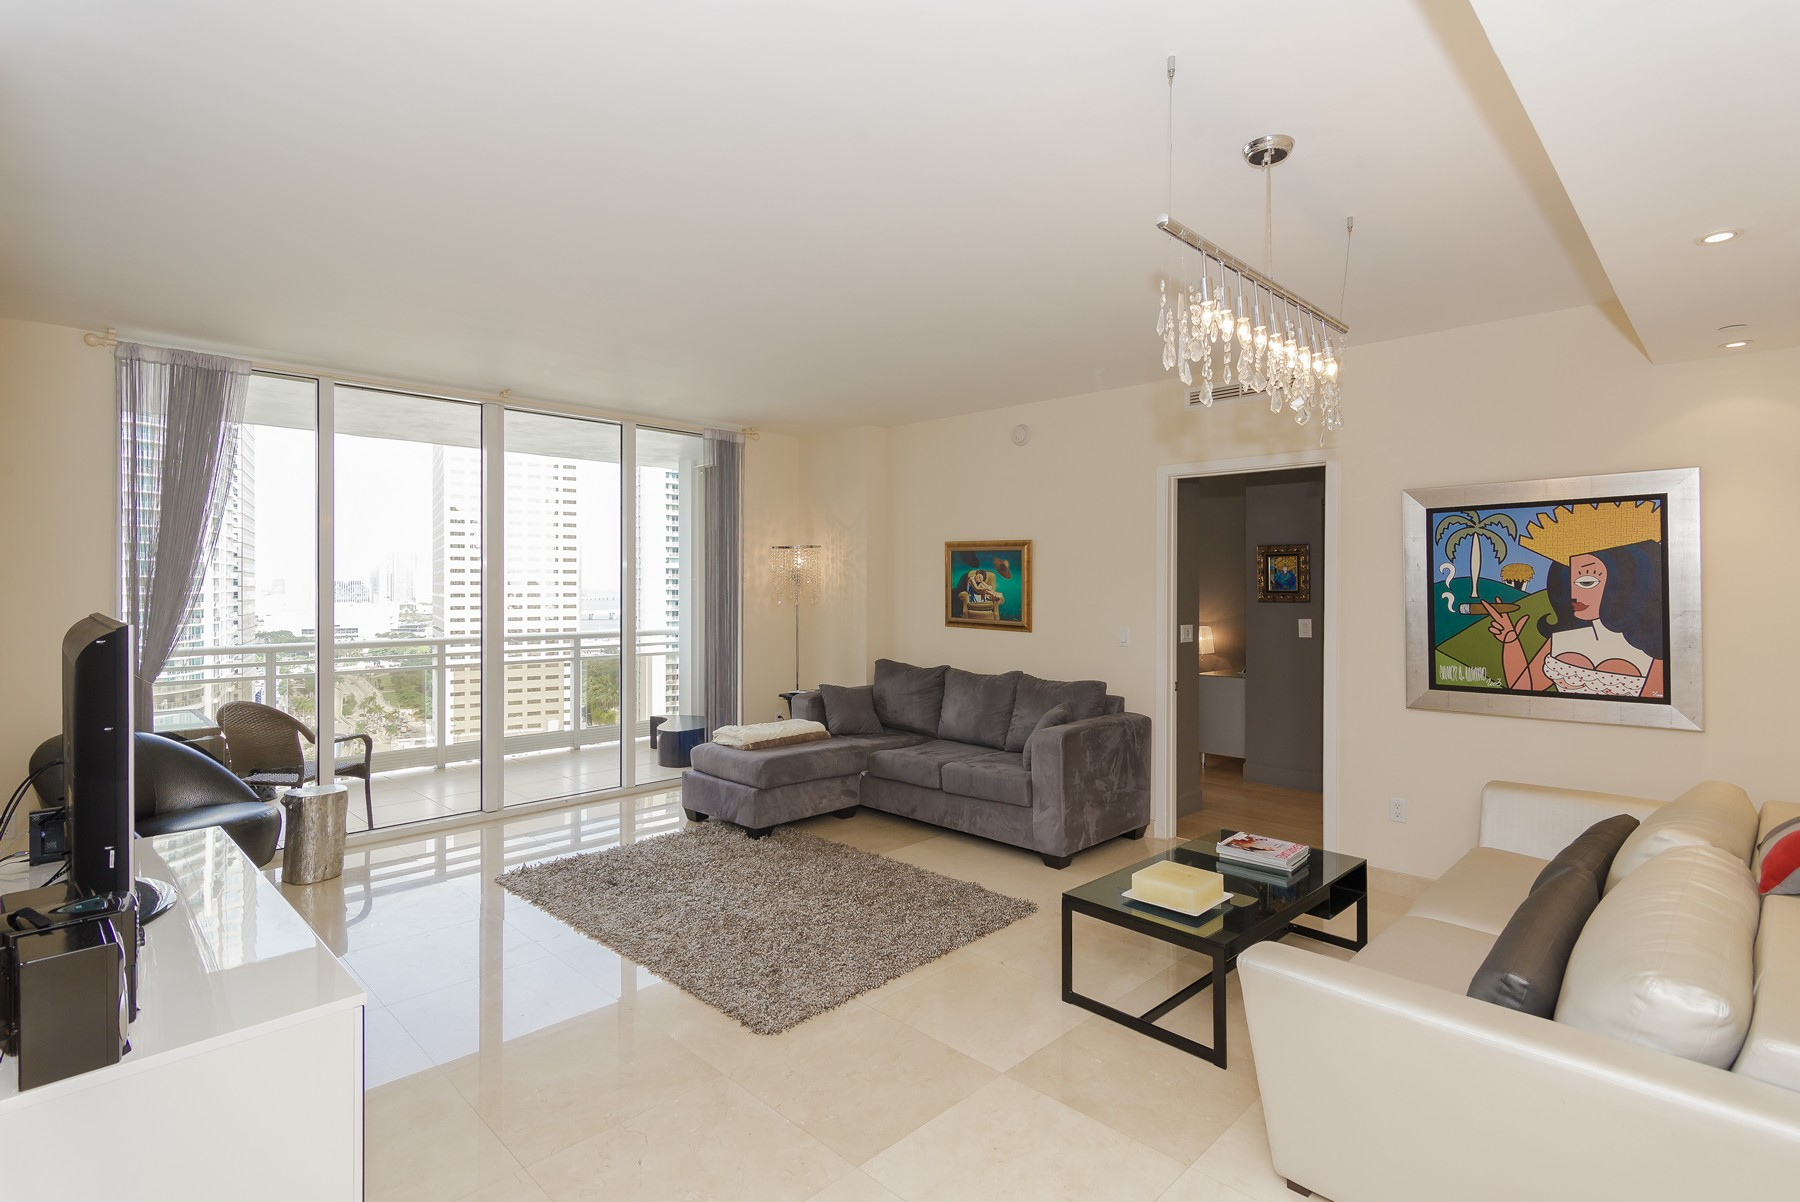 Condominium for Sale at Carbonell #2505 901 Brickell Key Blvd #2505 Miami, Florida 33131 United States